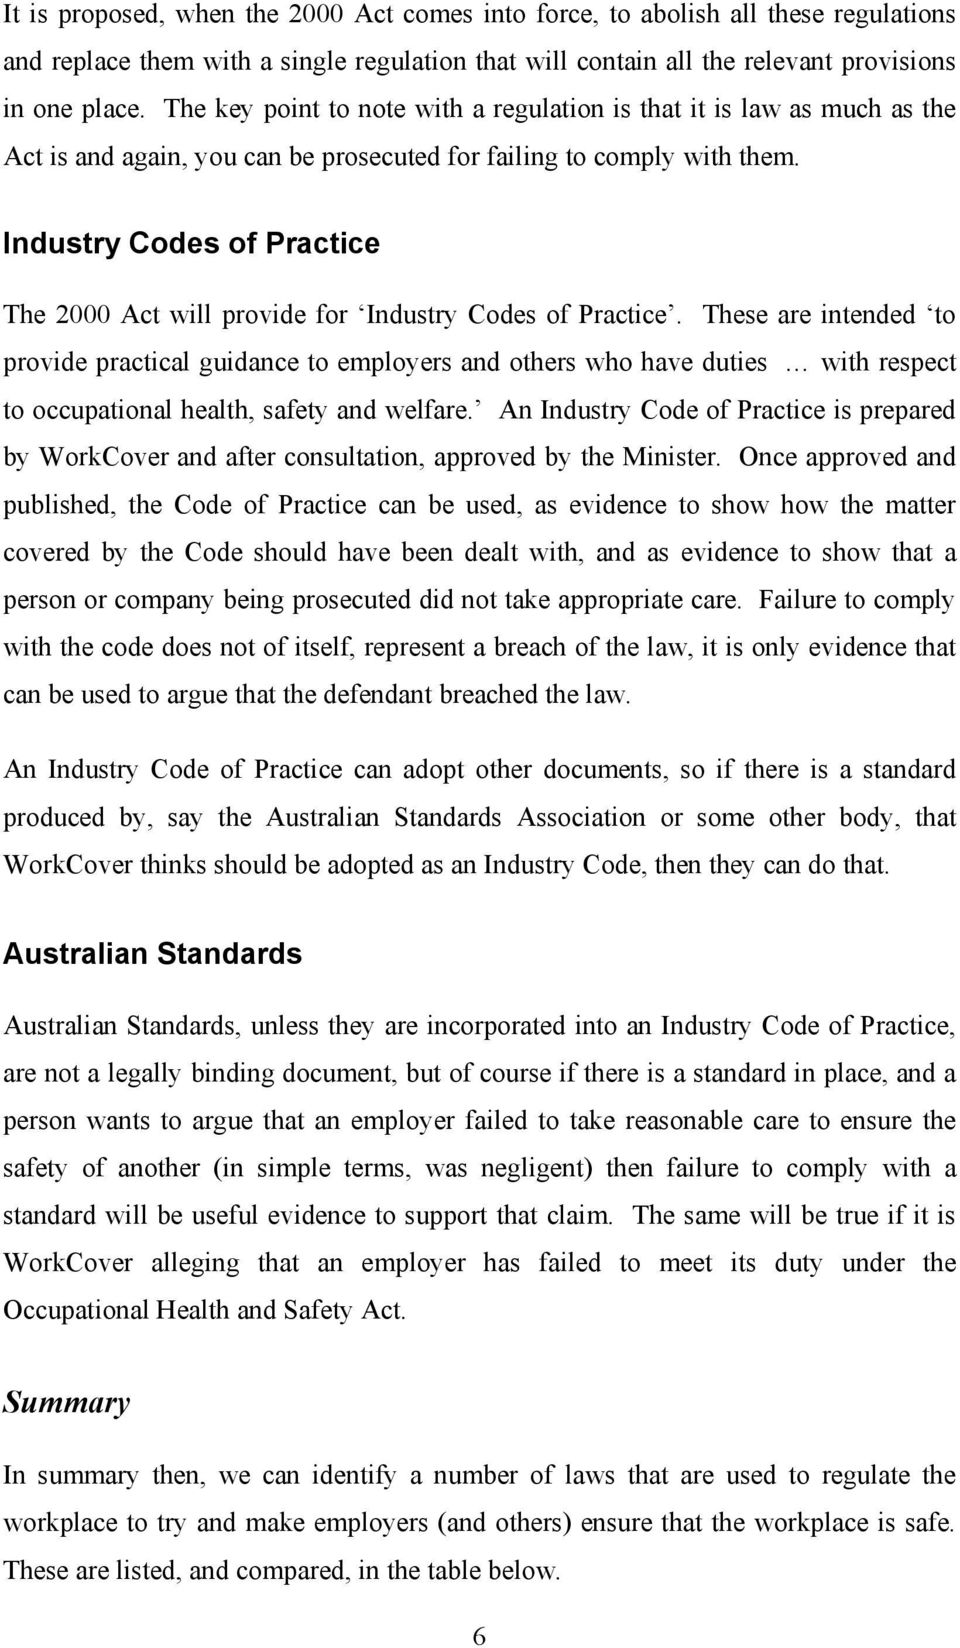 Industry Codes of Practice The 2000 Act will provide for Industry Codes of Practice.